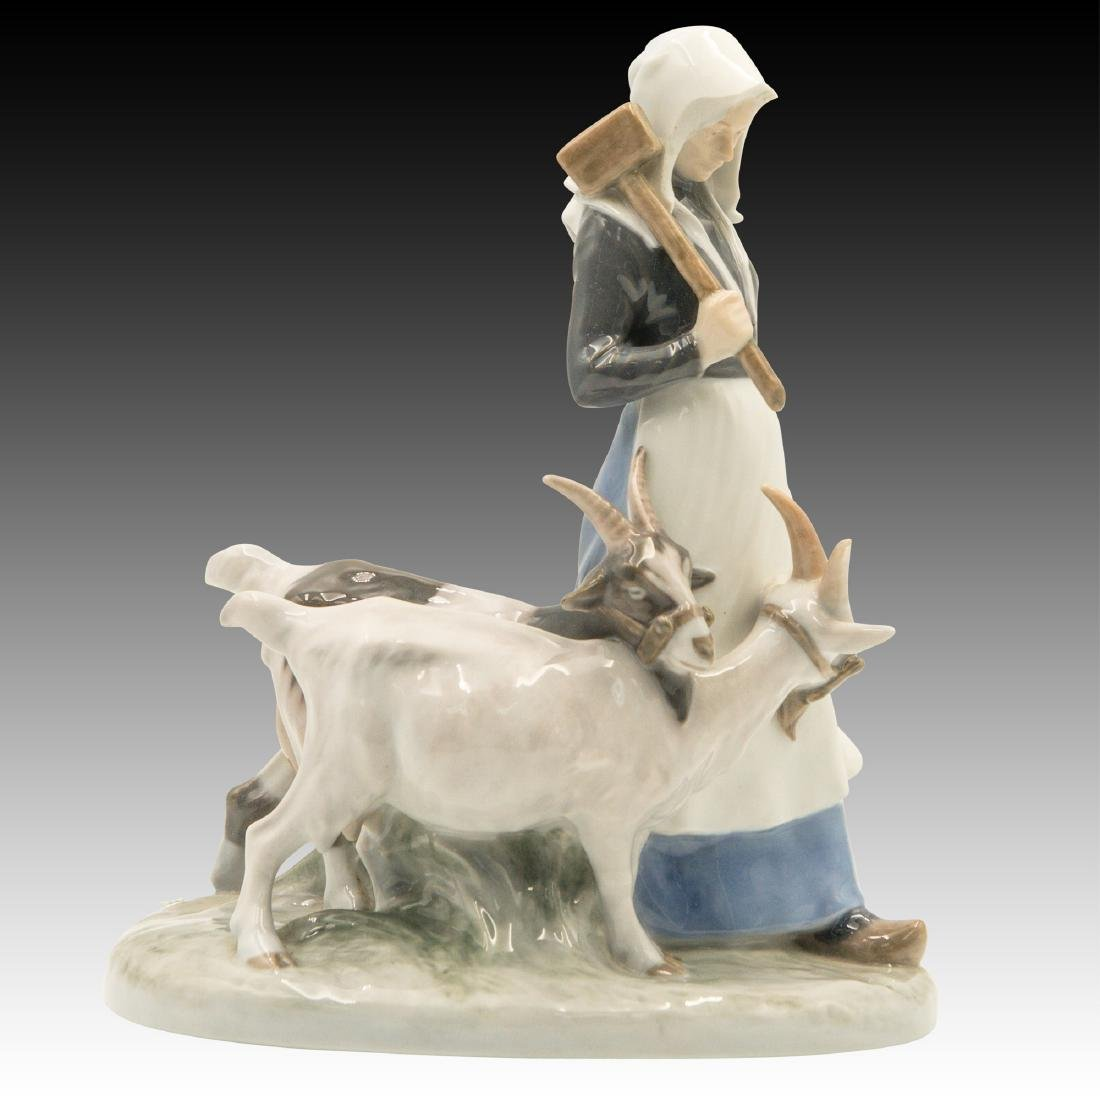 Royal Copenhagen Girl with the Goats Figurine